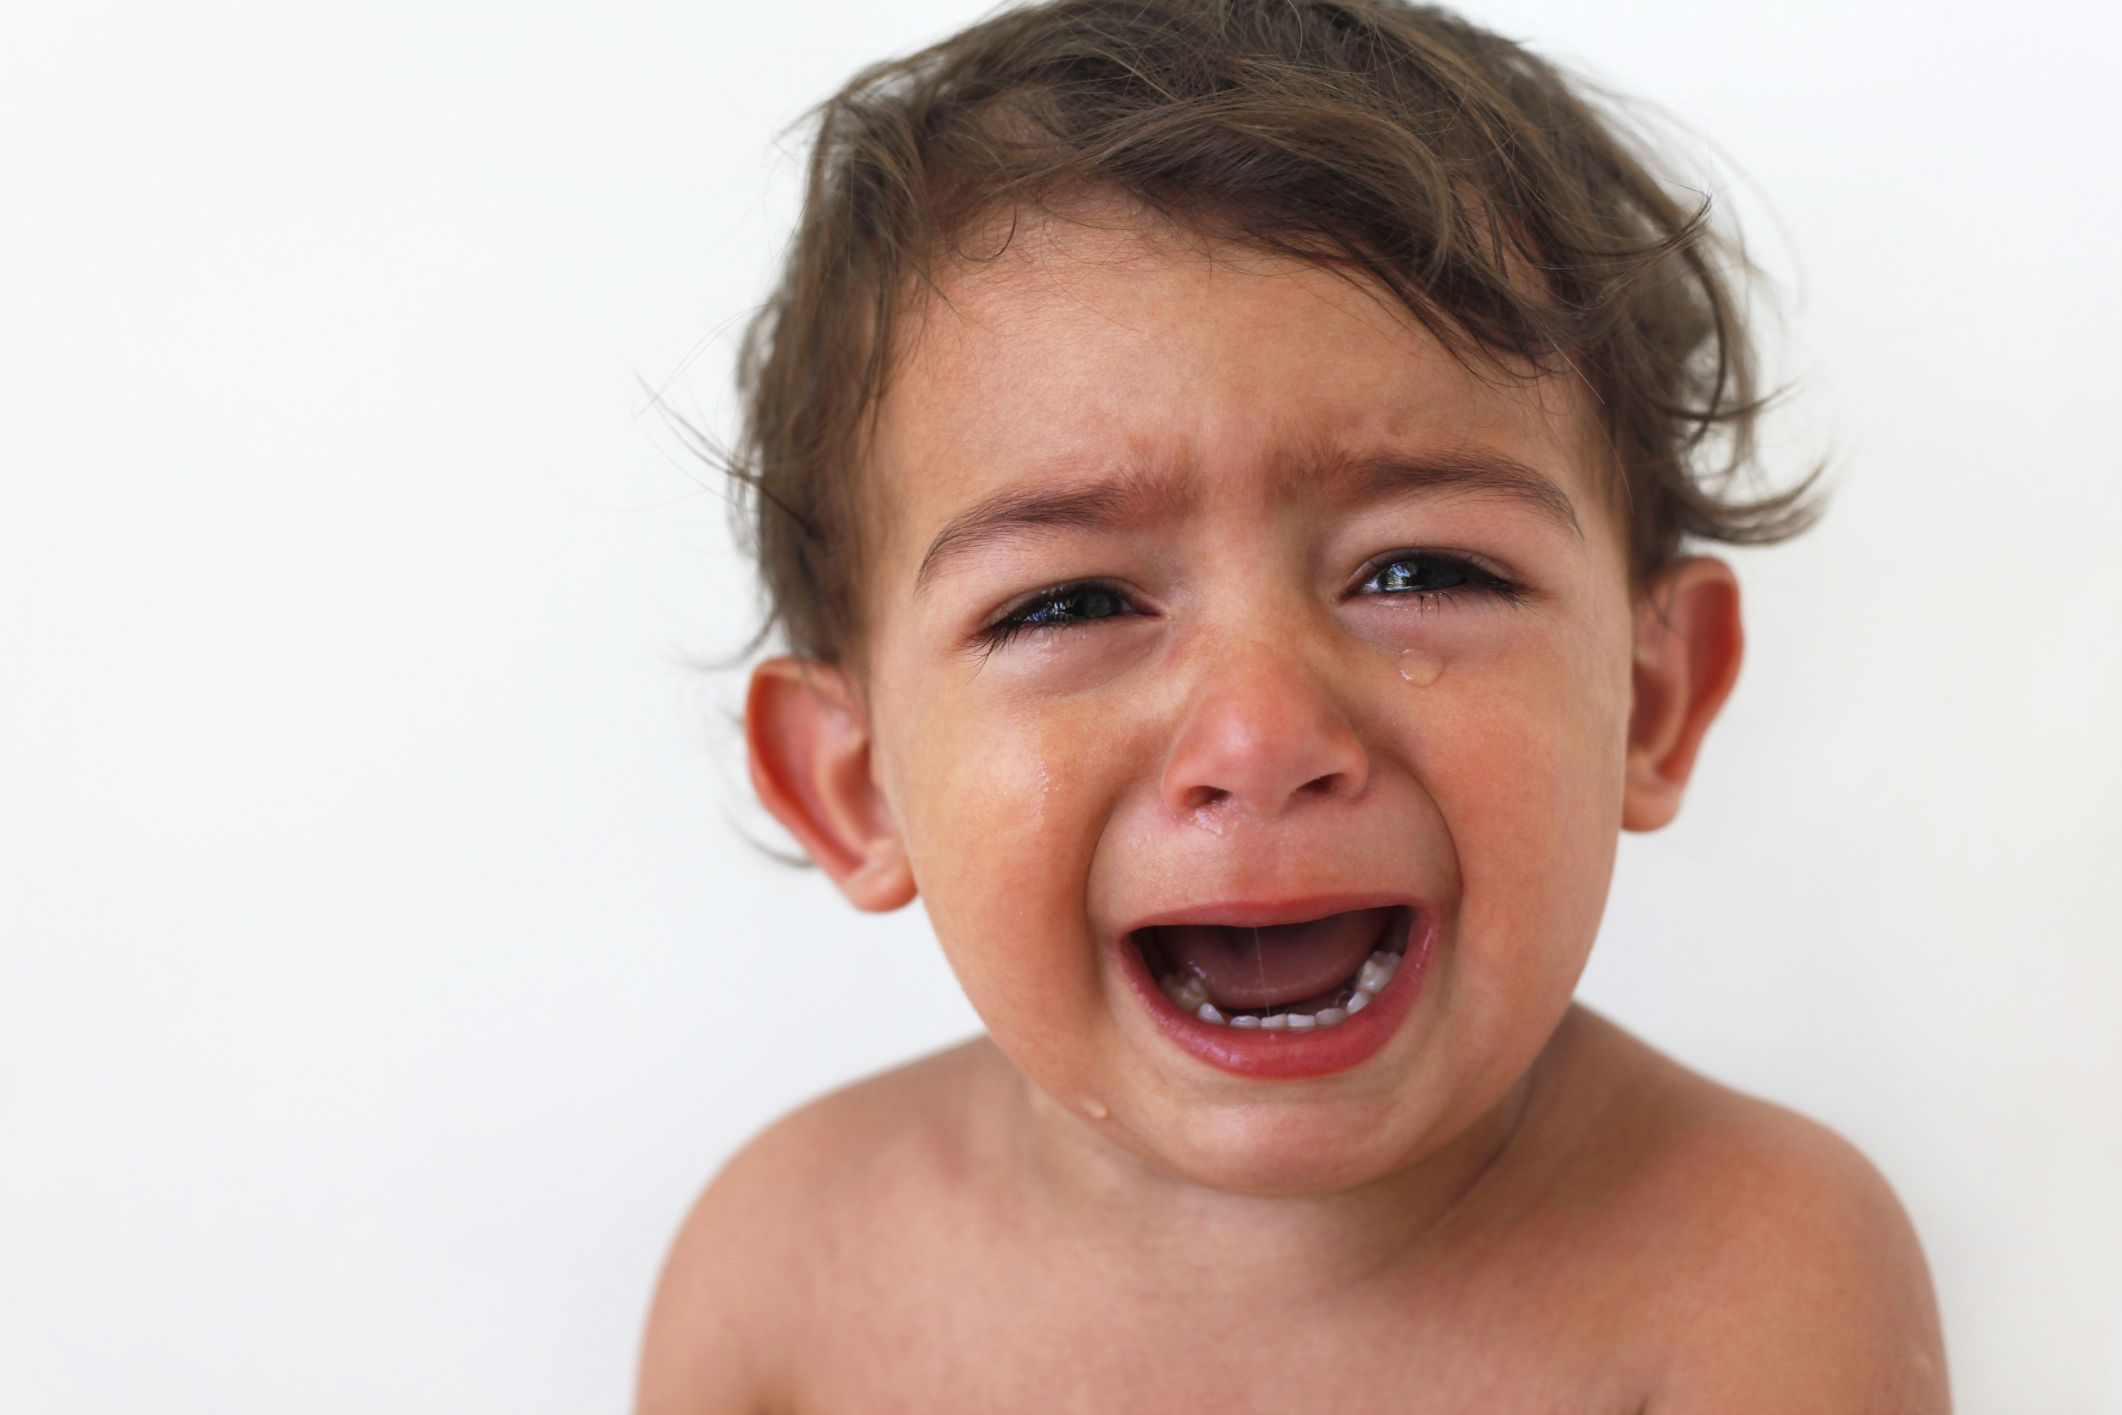 crying faces pics | Please enable JavaScript to view the ...